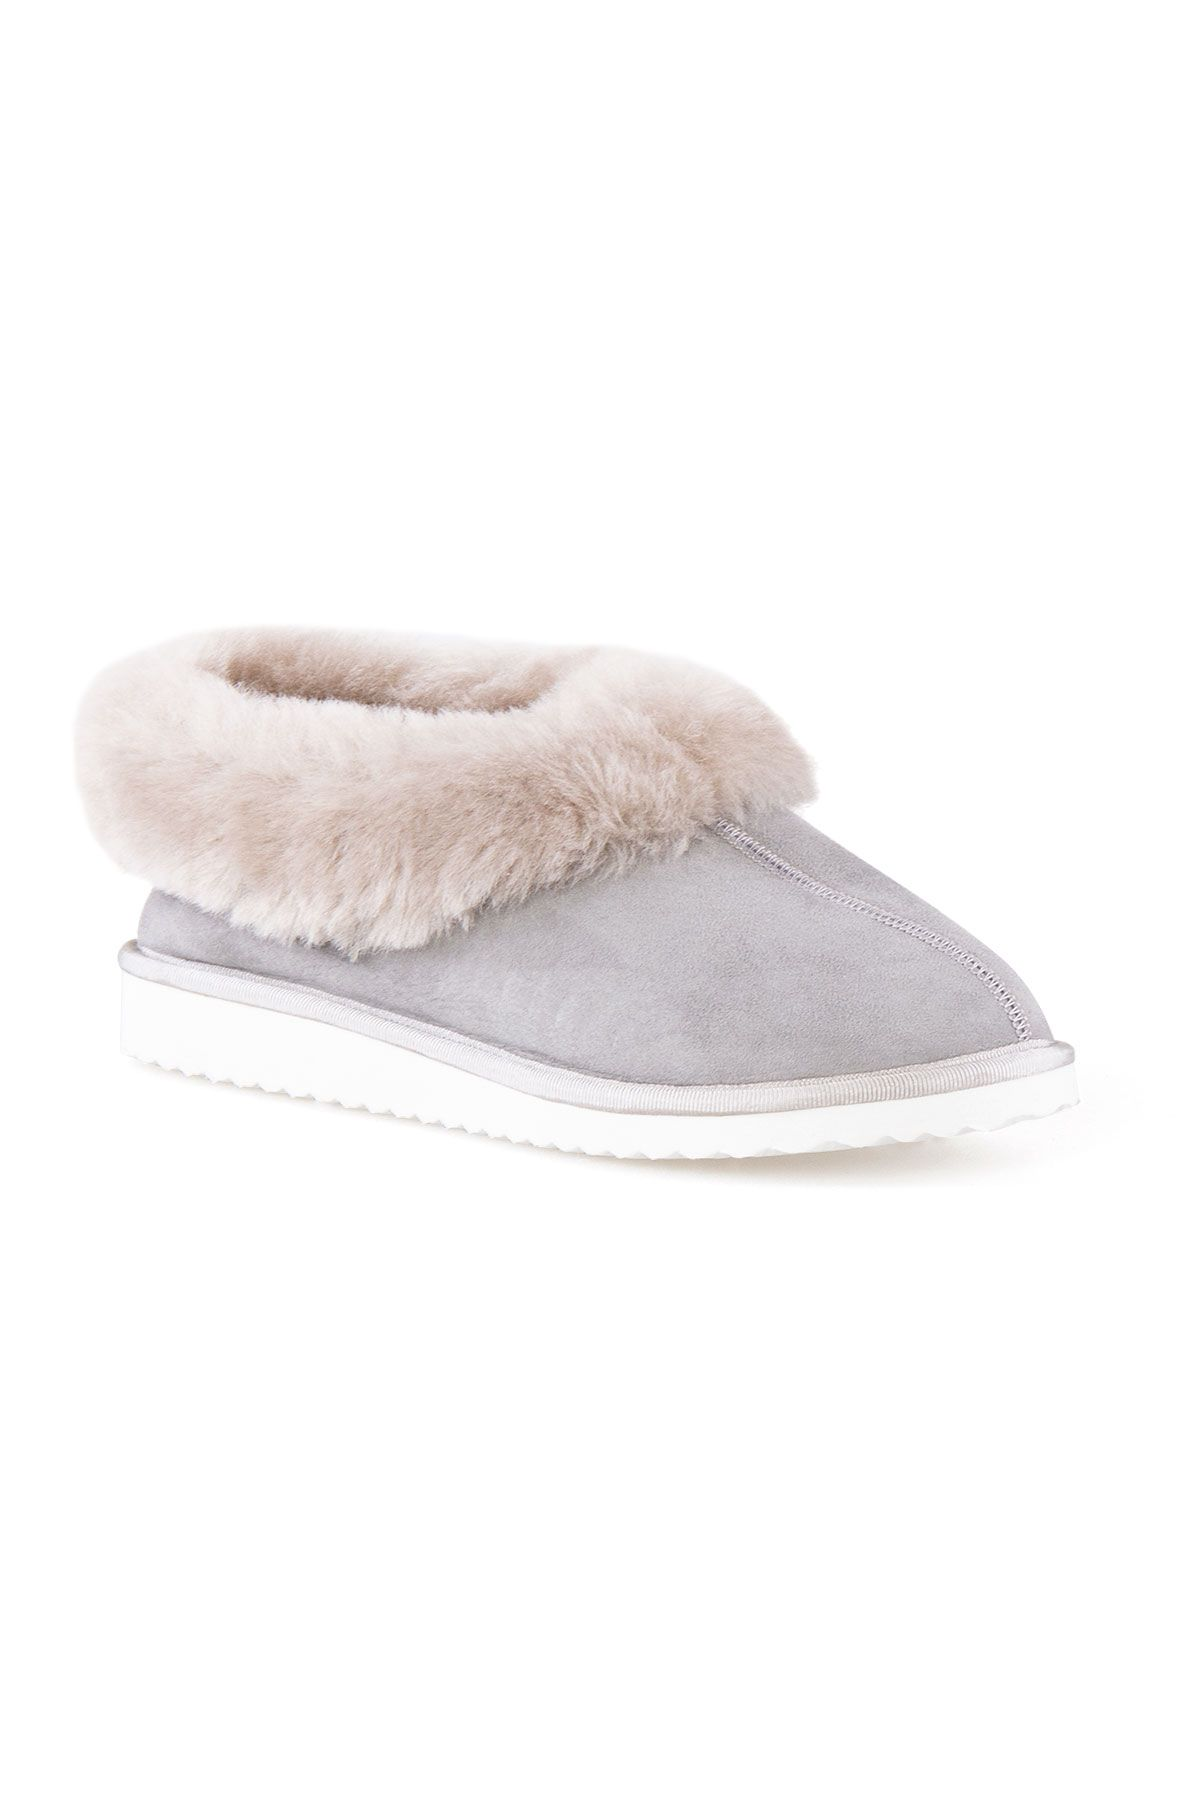 Pegia Genuine Suede Women's Sheepskin Lined House Shoes 191100 Gray